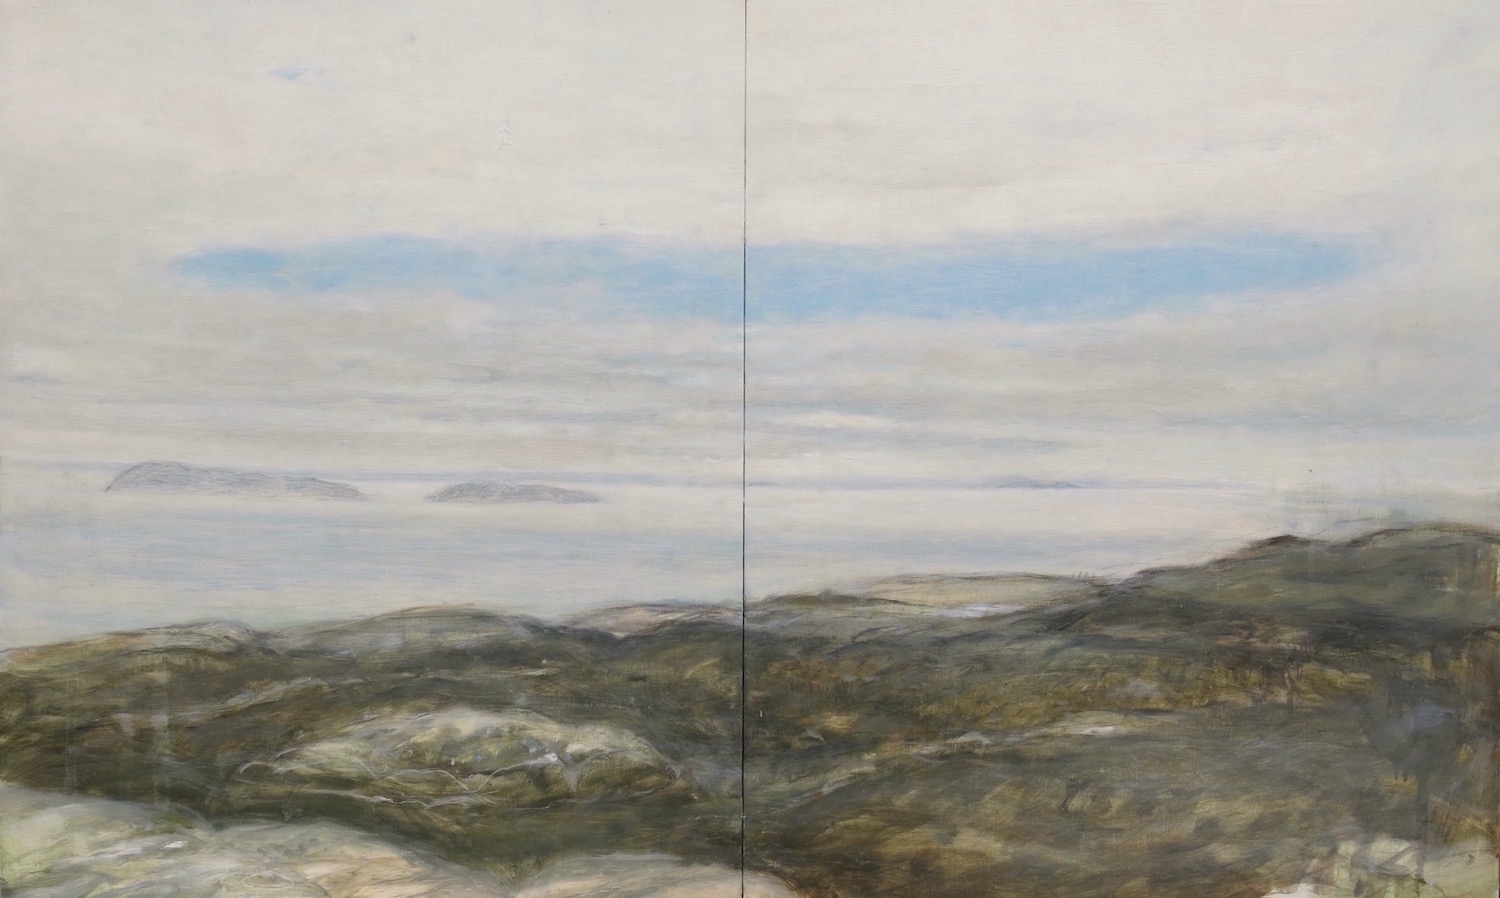 afternoon light-southcoast-iona diptych oil on gessoed panel   48x80cm